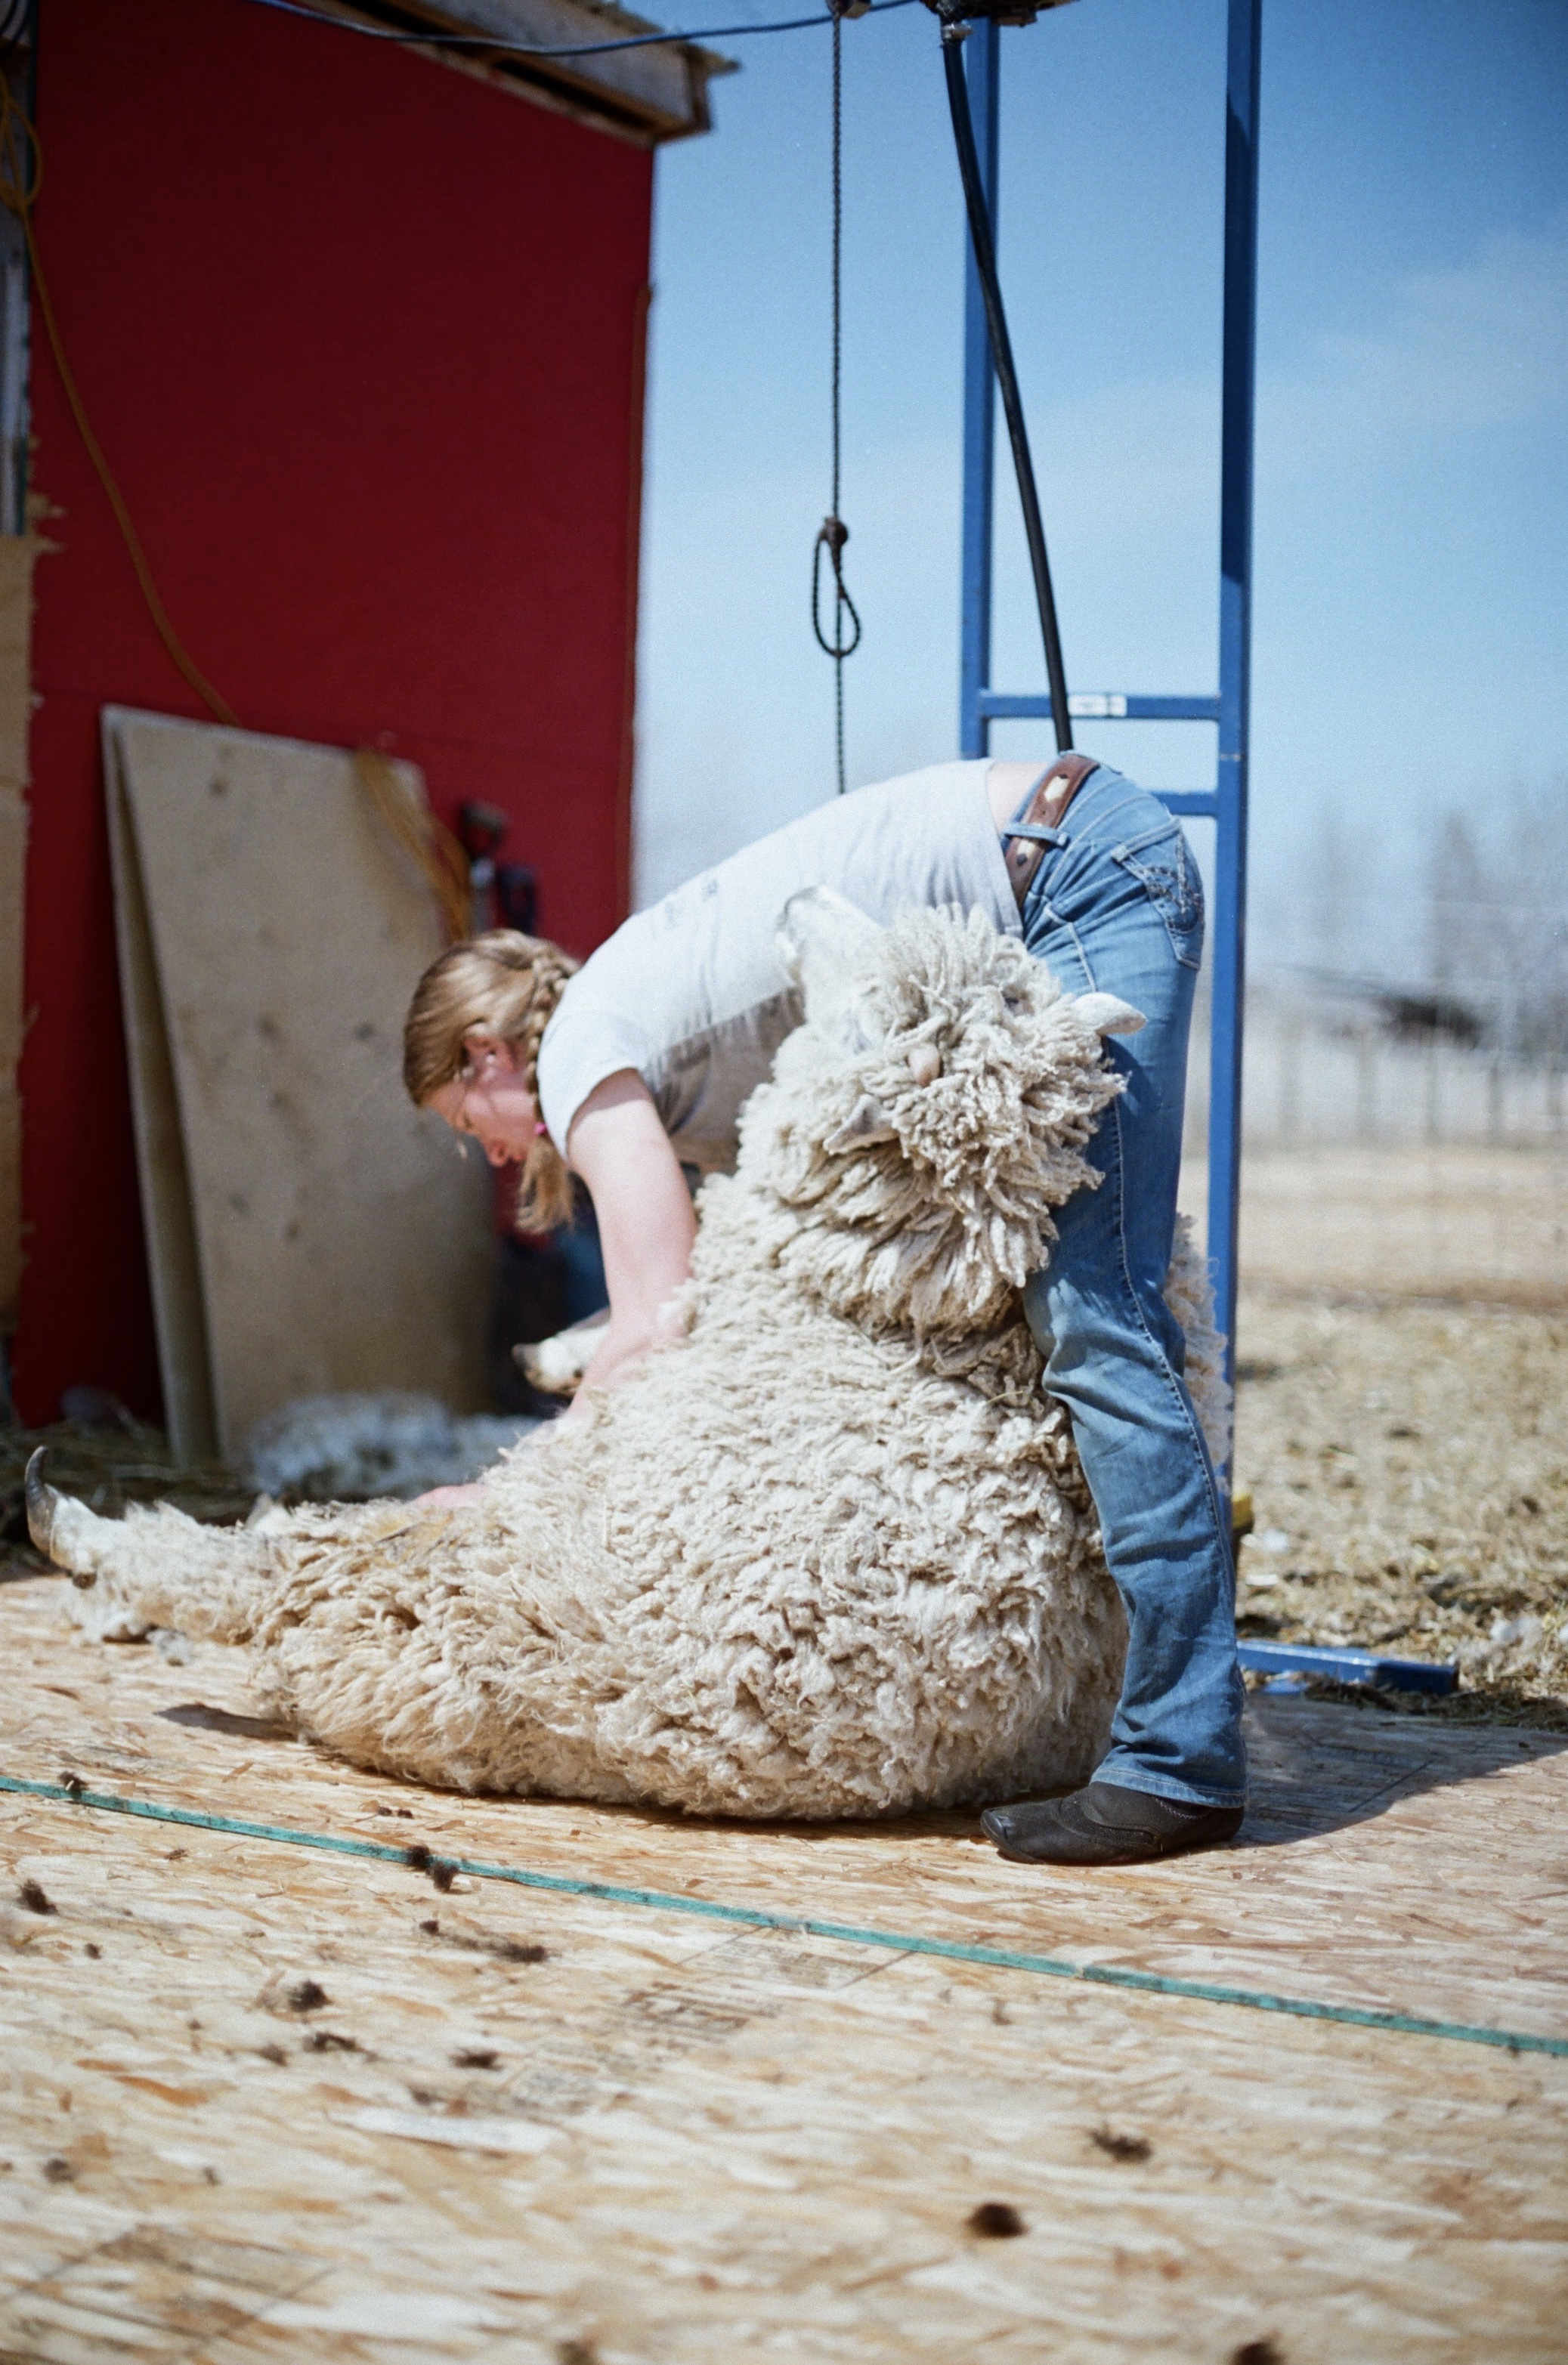 Stacey shearing Rex                                                                 (Photo by Mackenzie Smith)